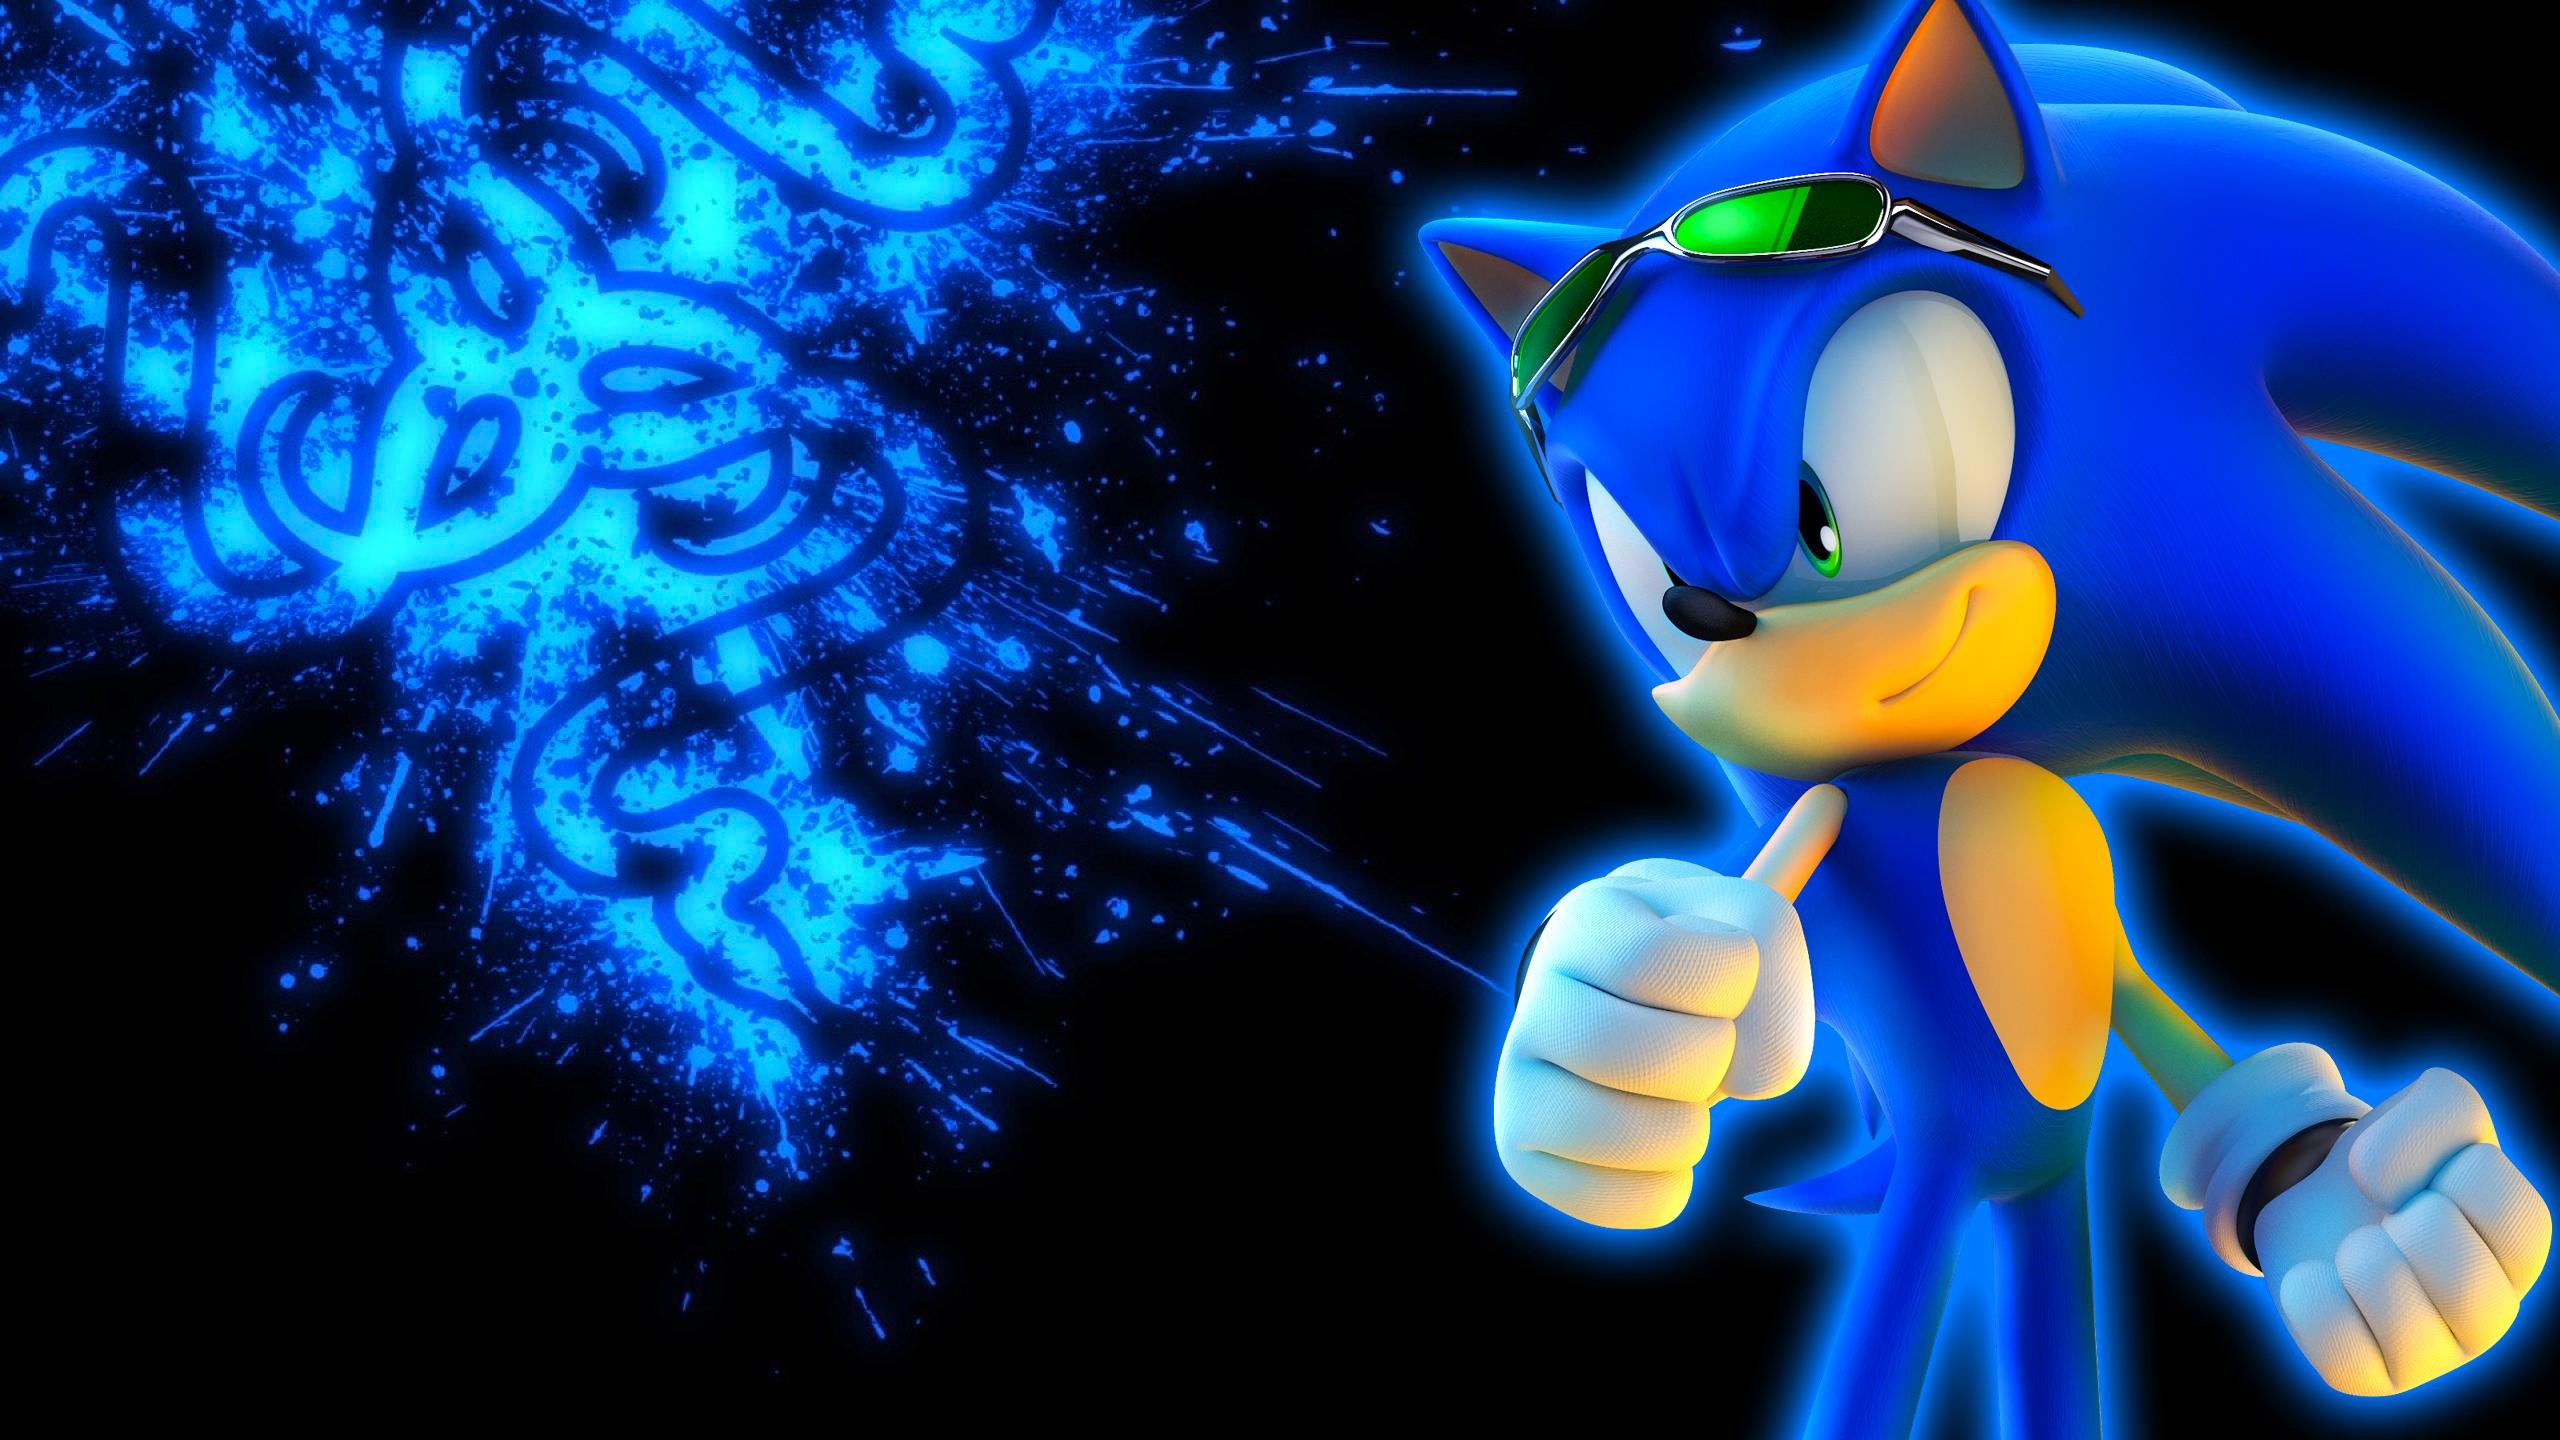 Sonic Wallpaper Download Free Beautiful Hd Wallpapers For